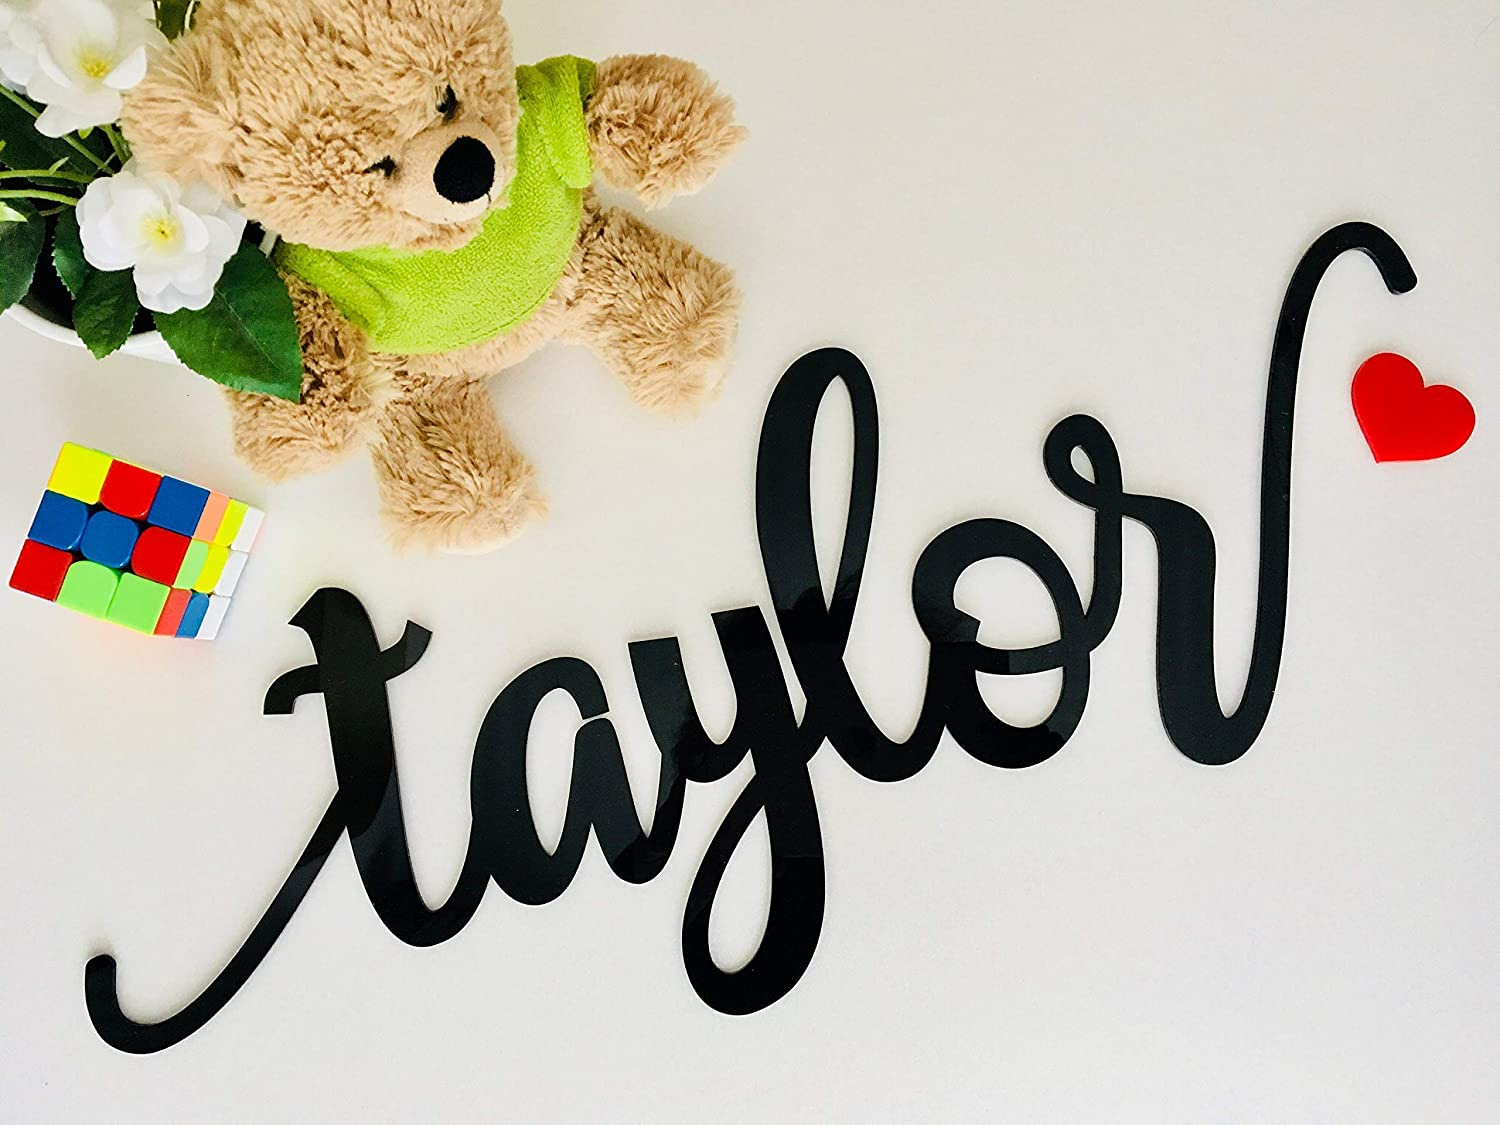 Personalized Laser Cut Large Name Sign Wall Hanging Sign Baby Name Script Letters Nursery Art Decor 1st Birthday Party Decorations Backdrop Photo Prop Acrylic Wood Metal Acrylic Plaque Children's Room